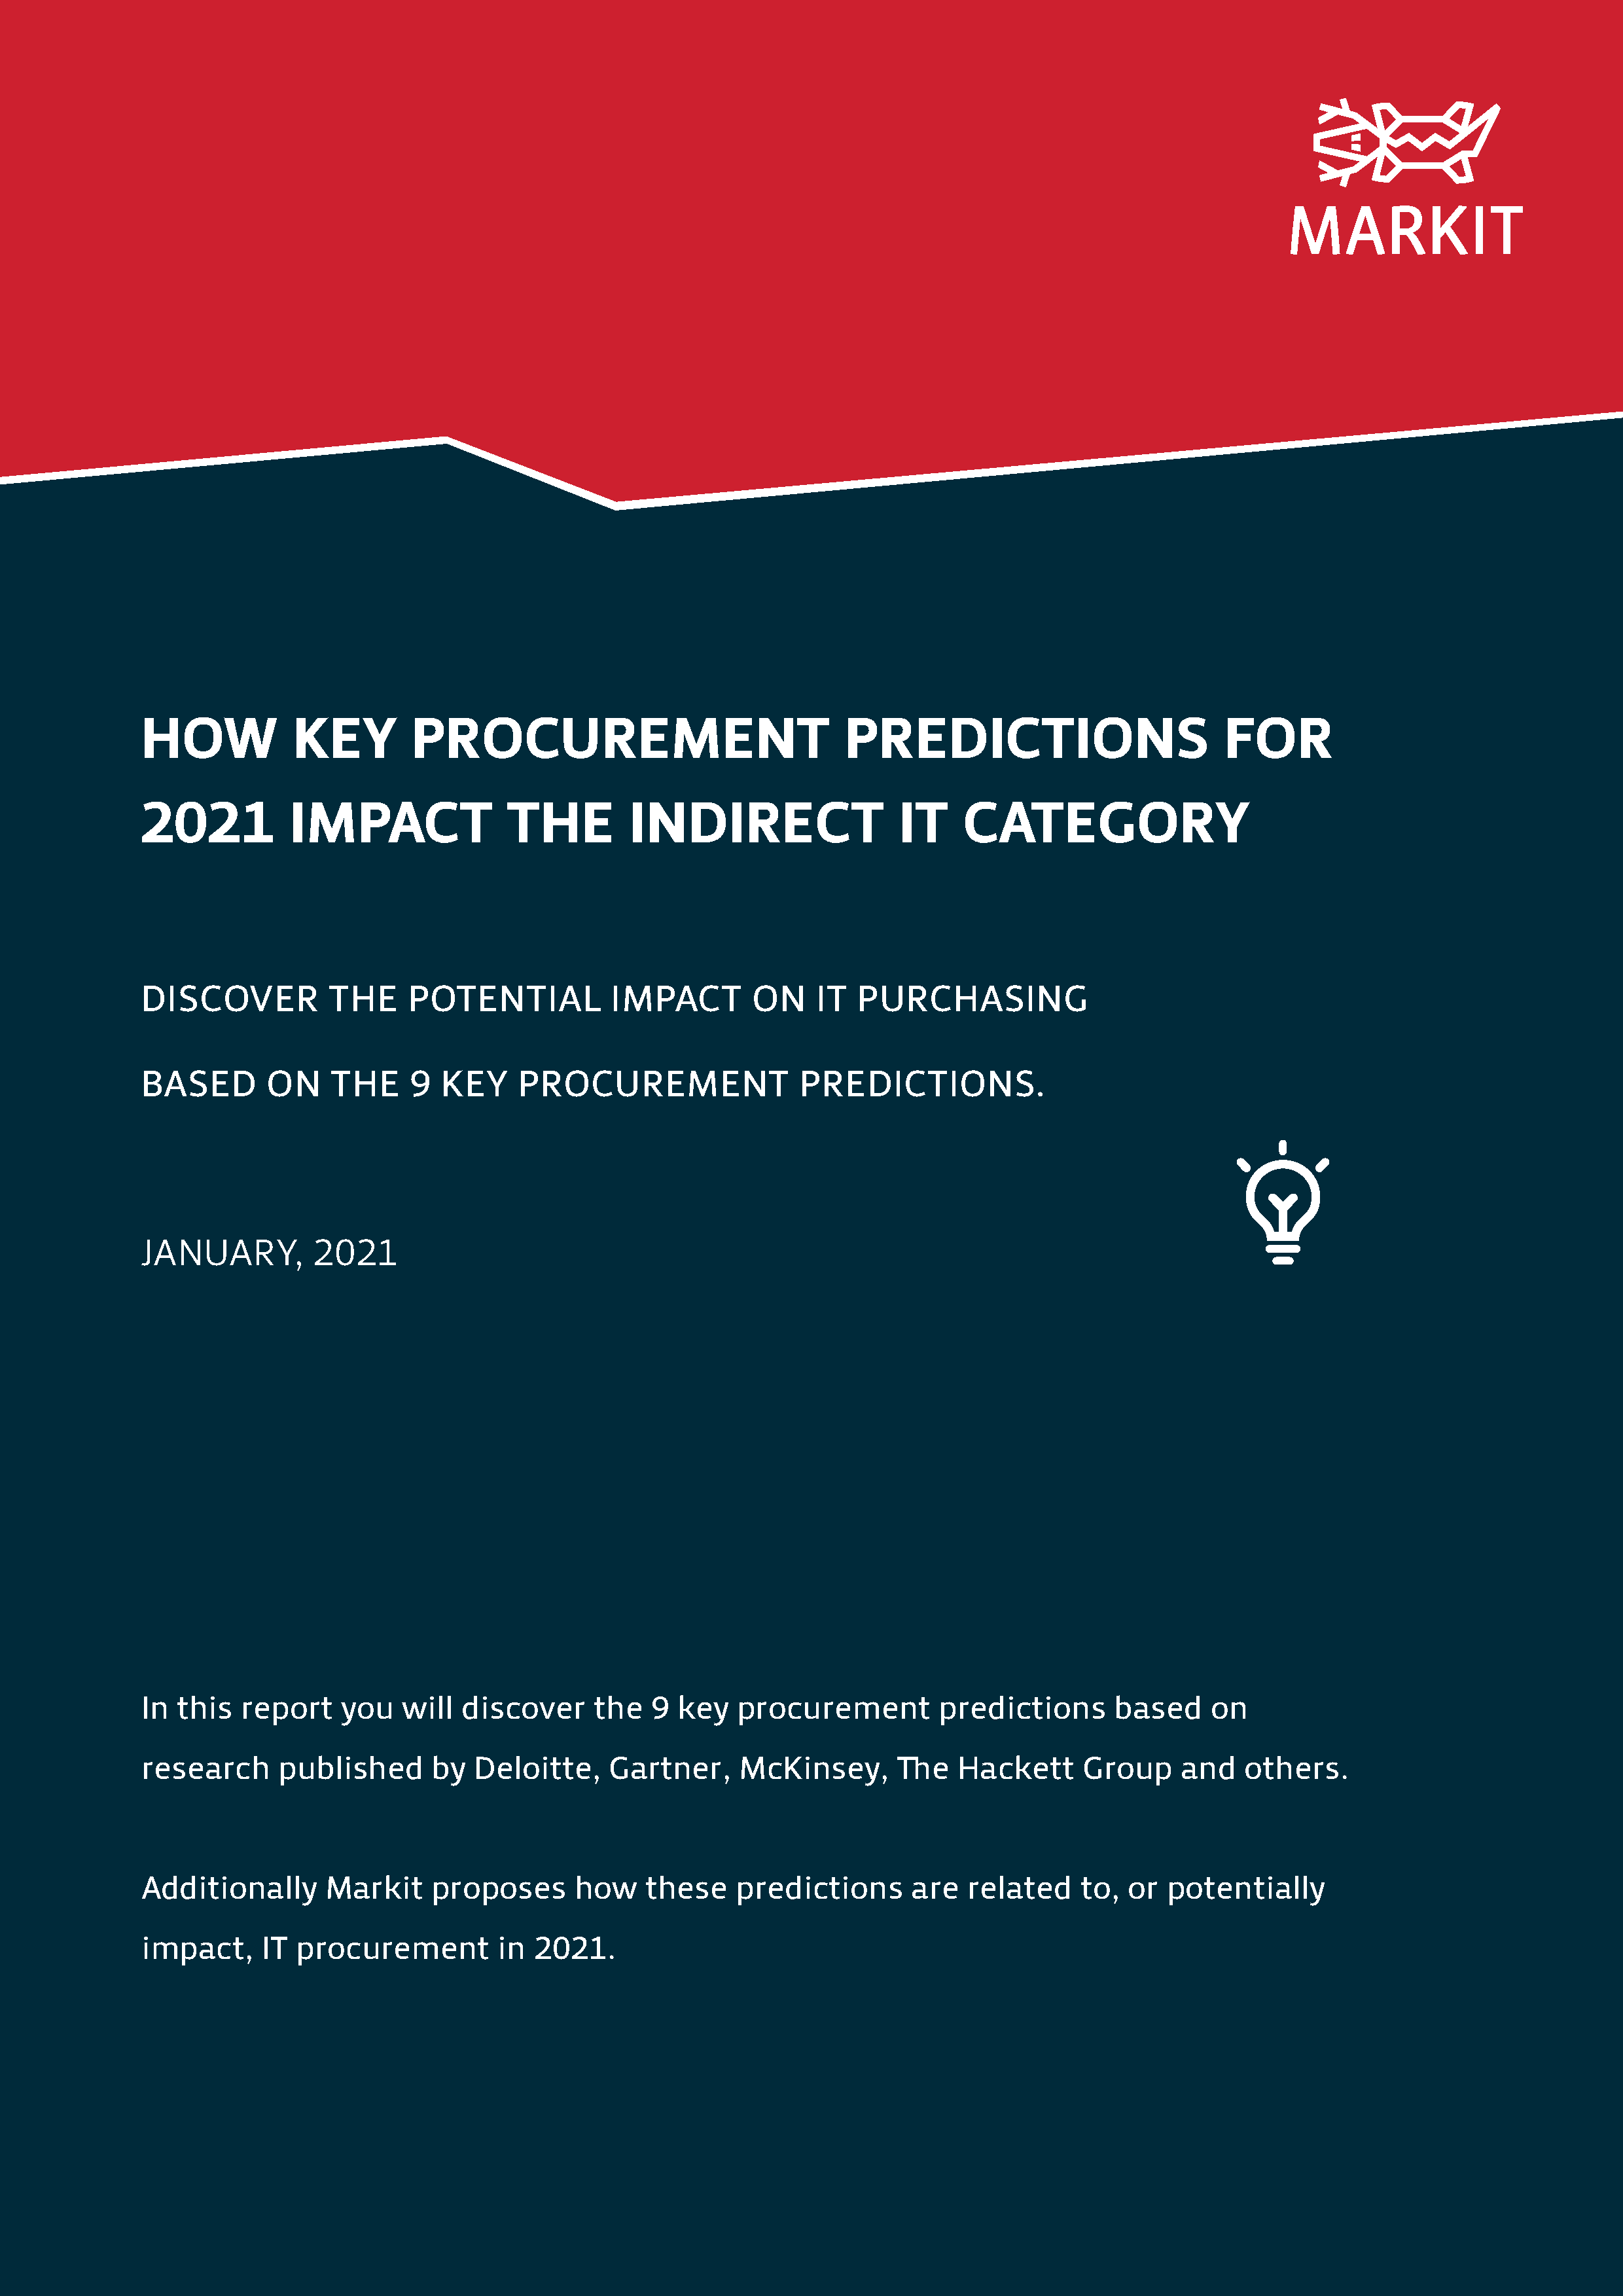 How Key Procurement Predictions For 2021 Impact The Indirect IT Category